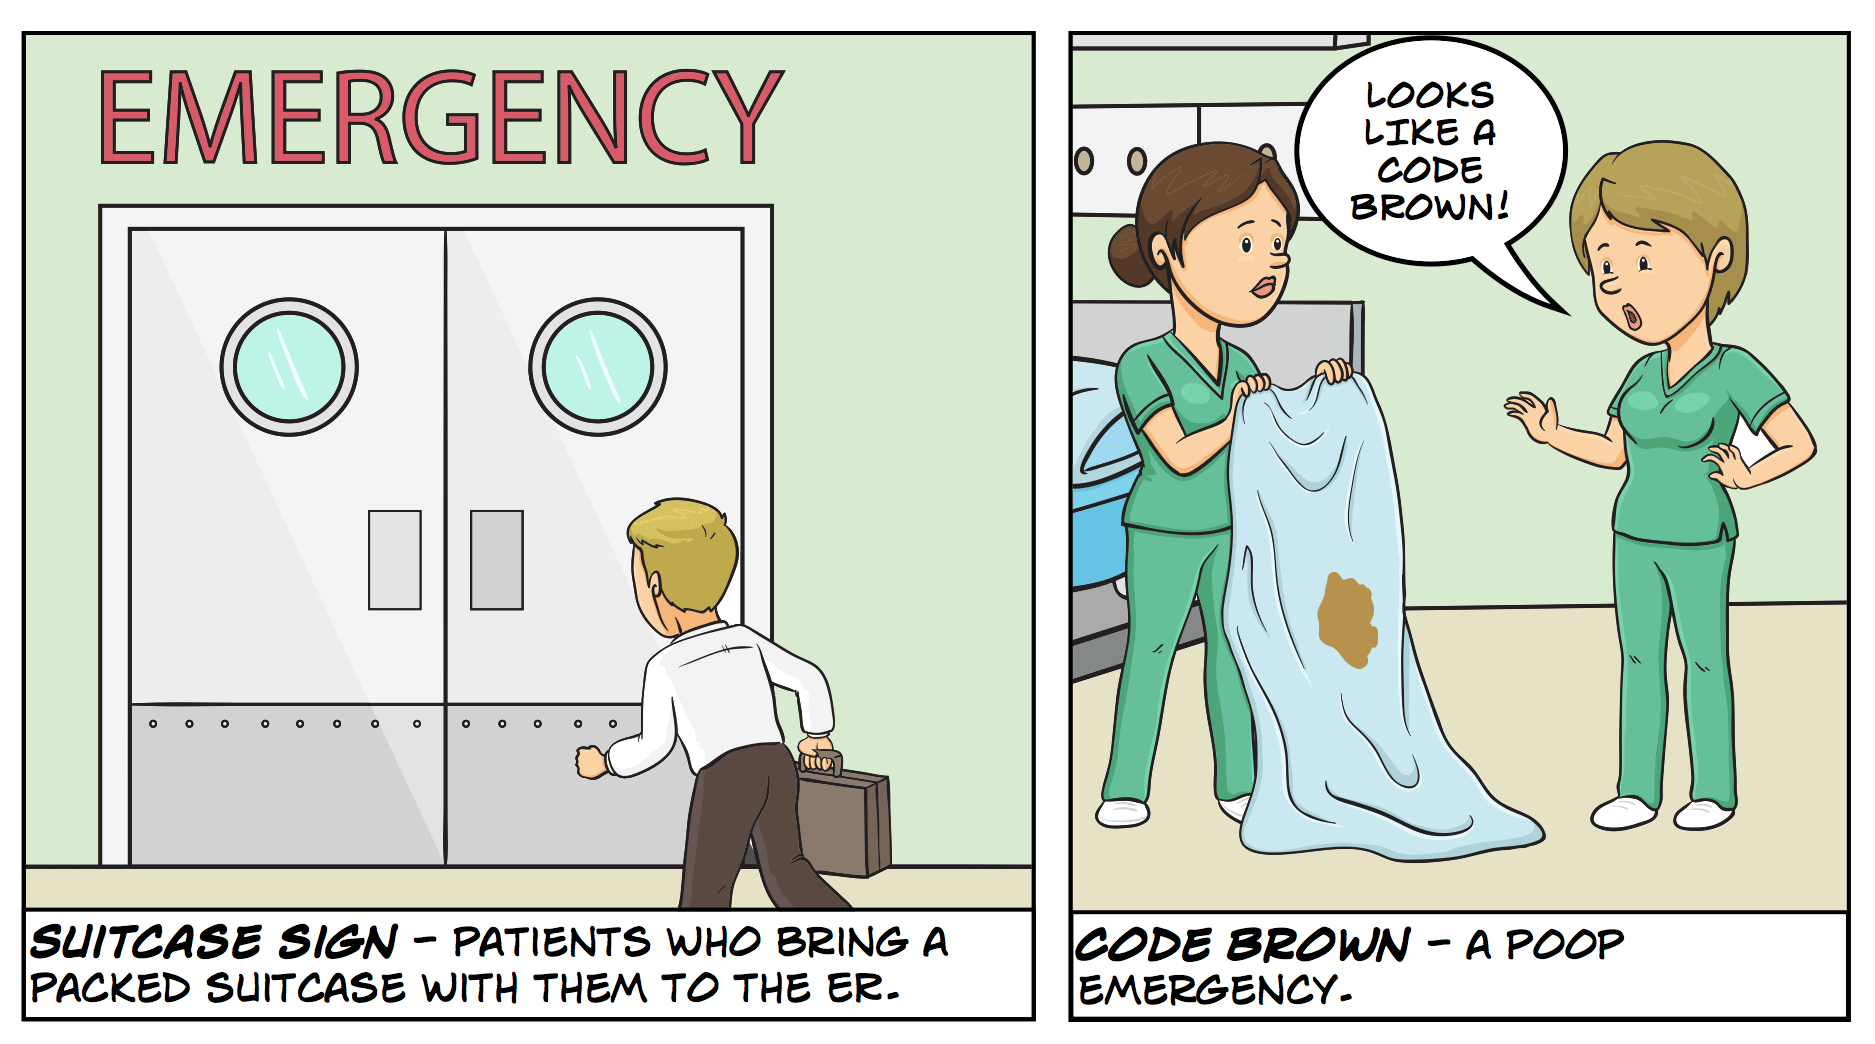 Code Brown - a poop emergency.